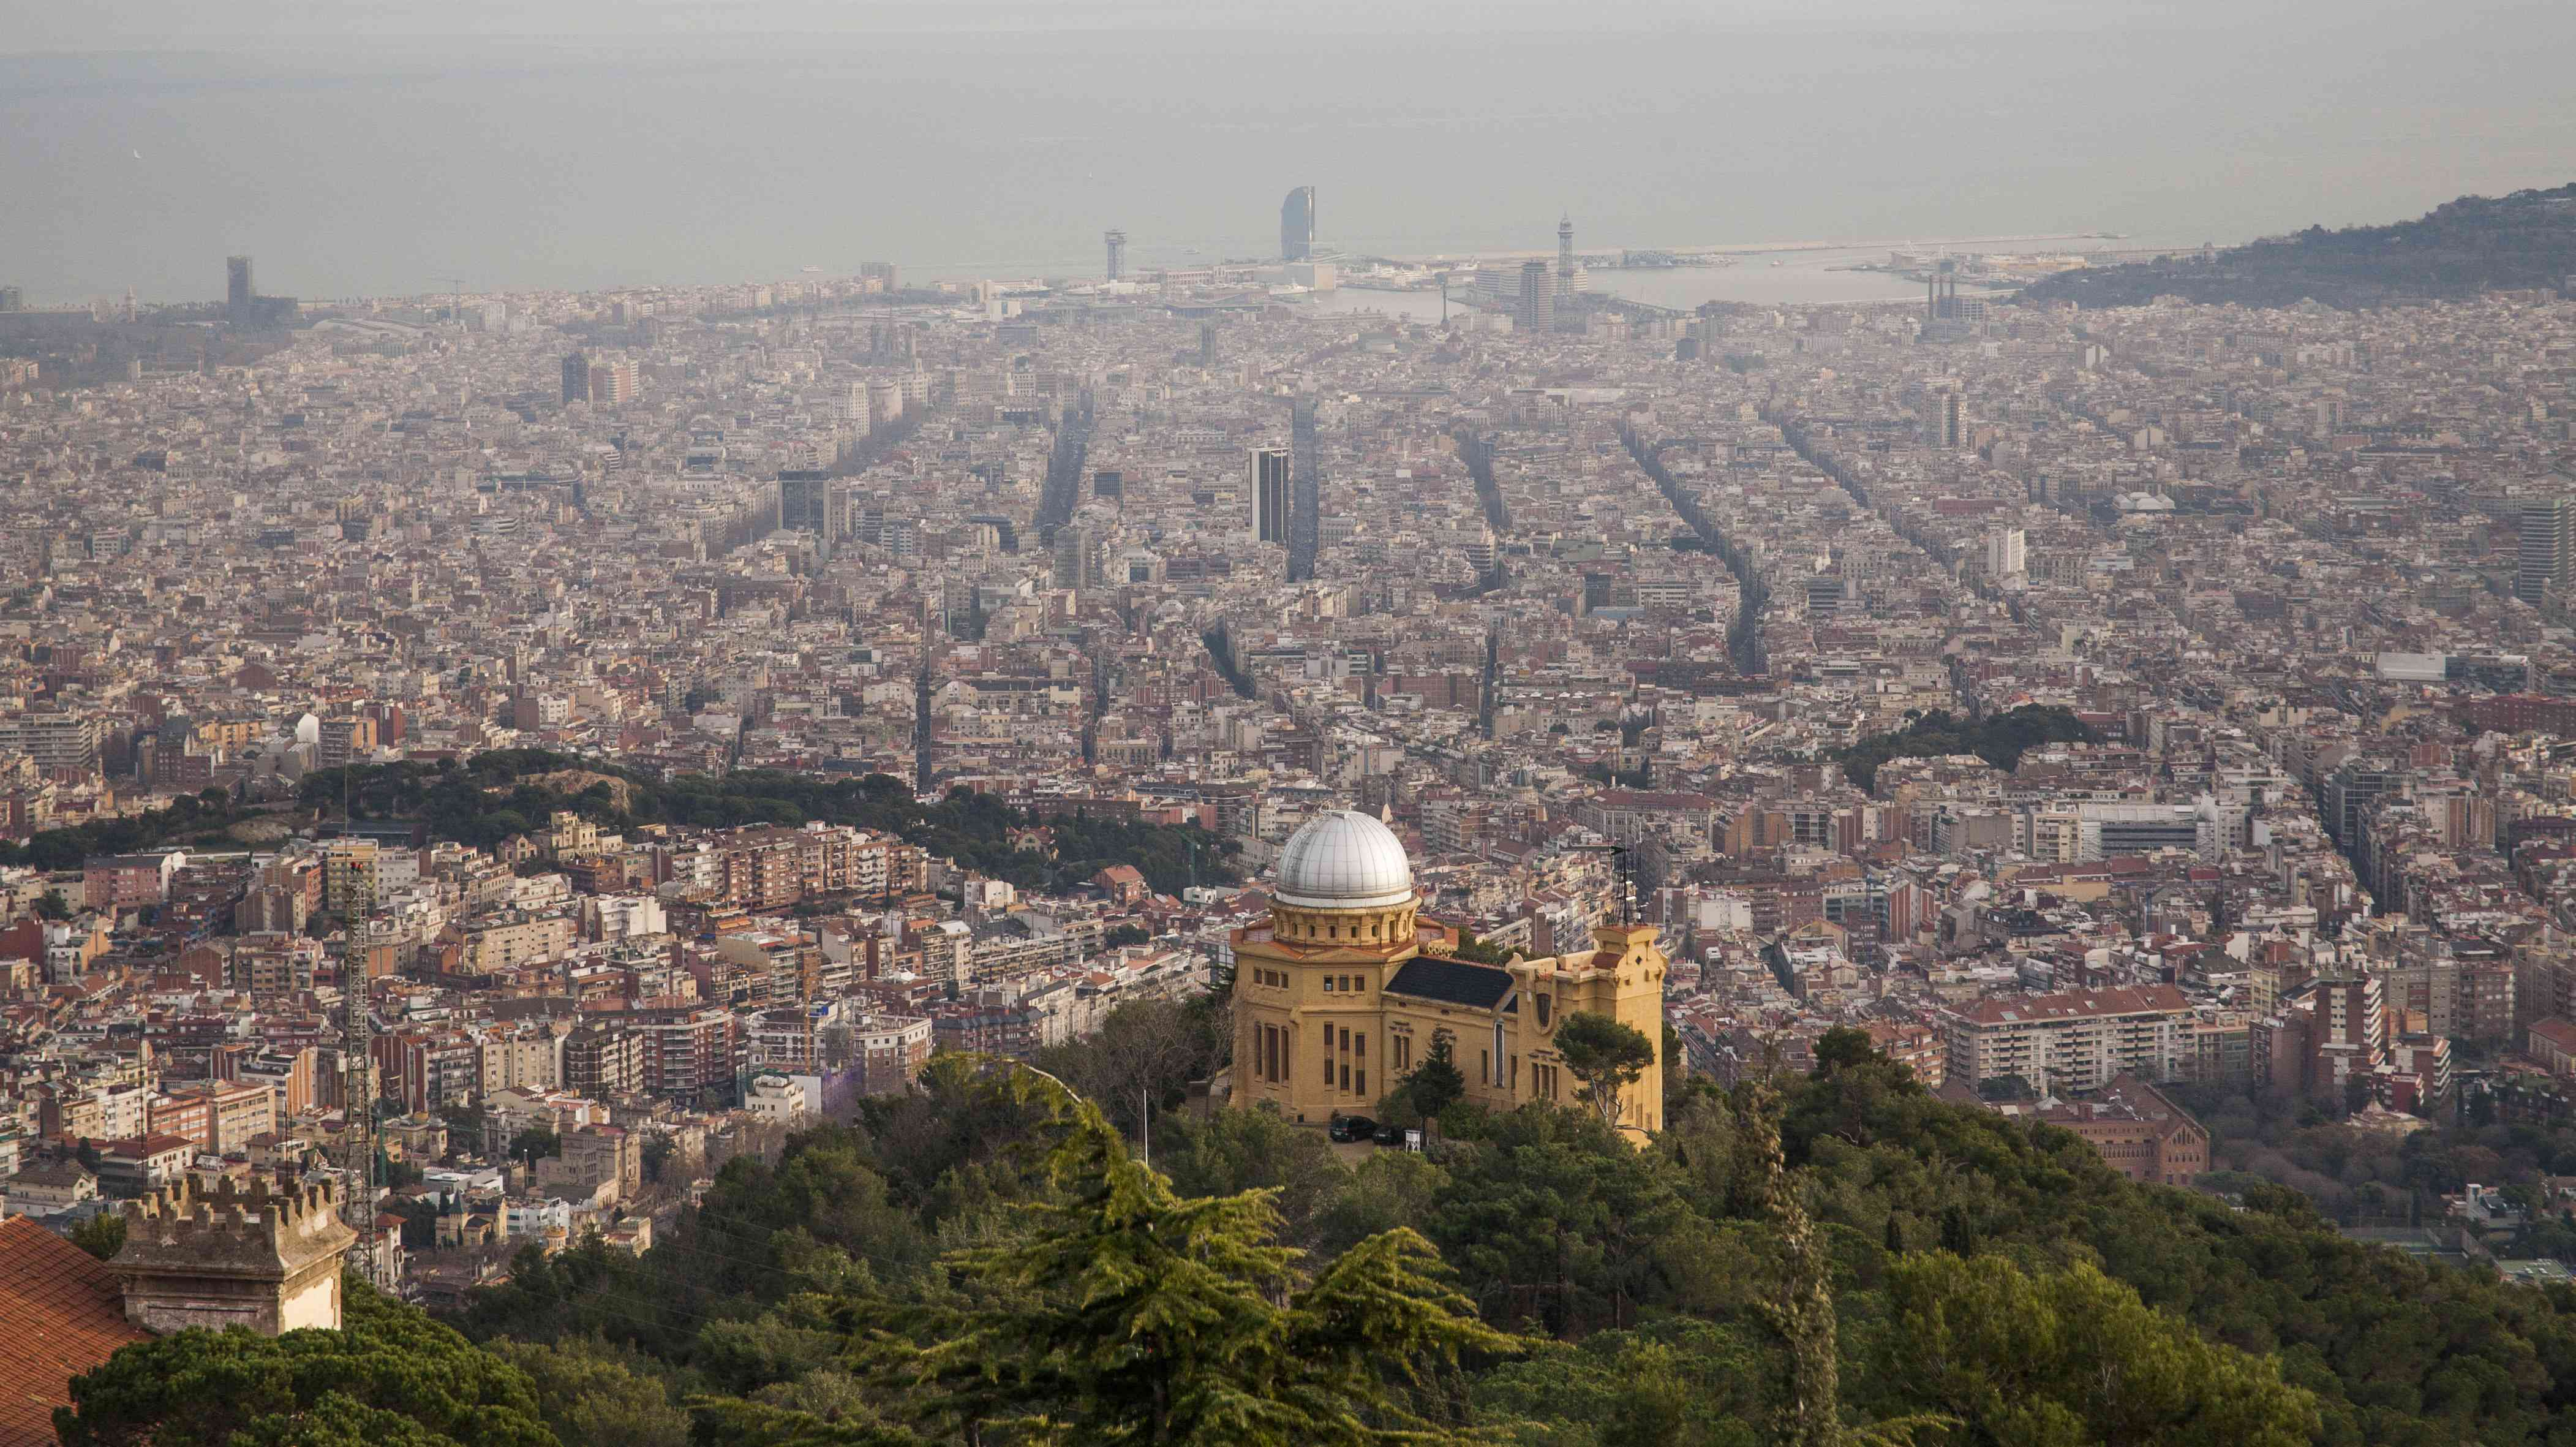 Fabra Observatory overlooking the city of Barcelona, Spain